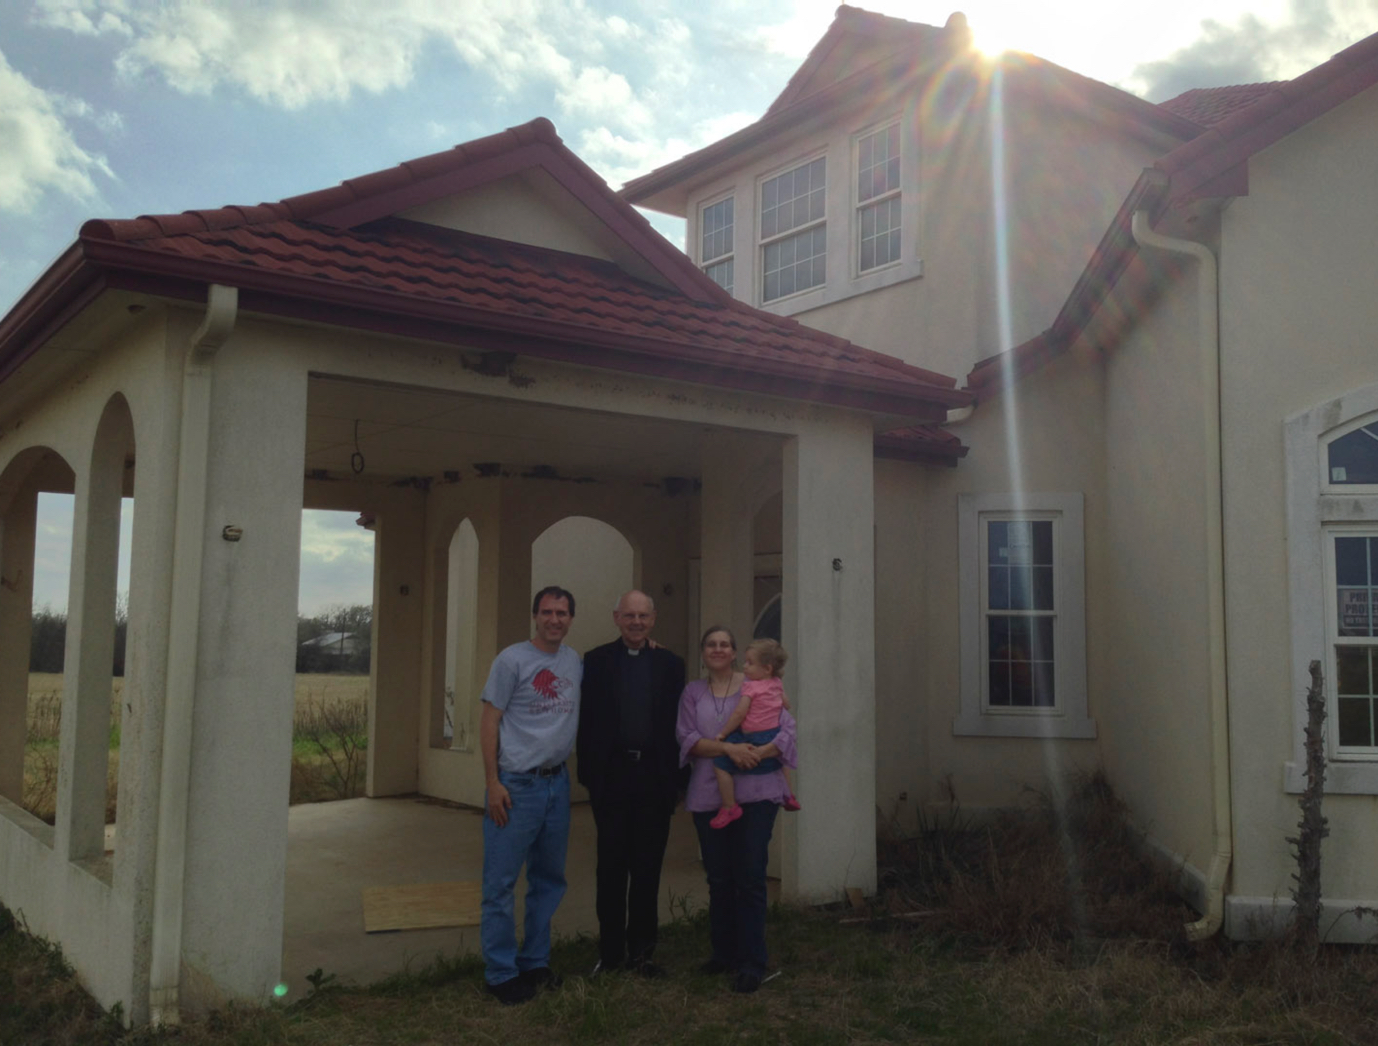 Fr. Peter Hocken from Austria visits the Elgin property shortly after it is purchased.